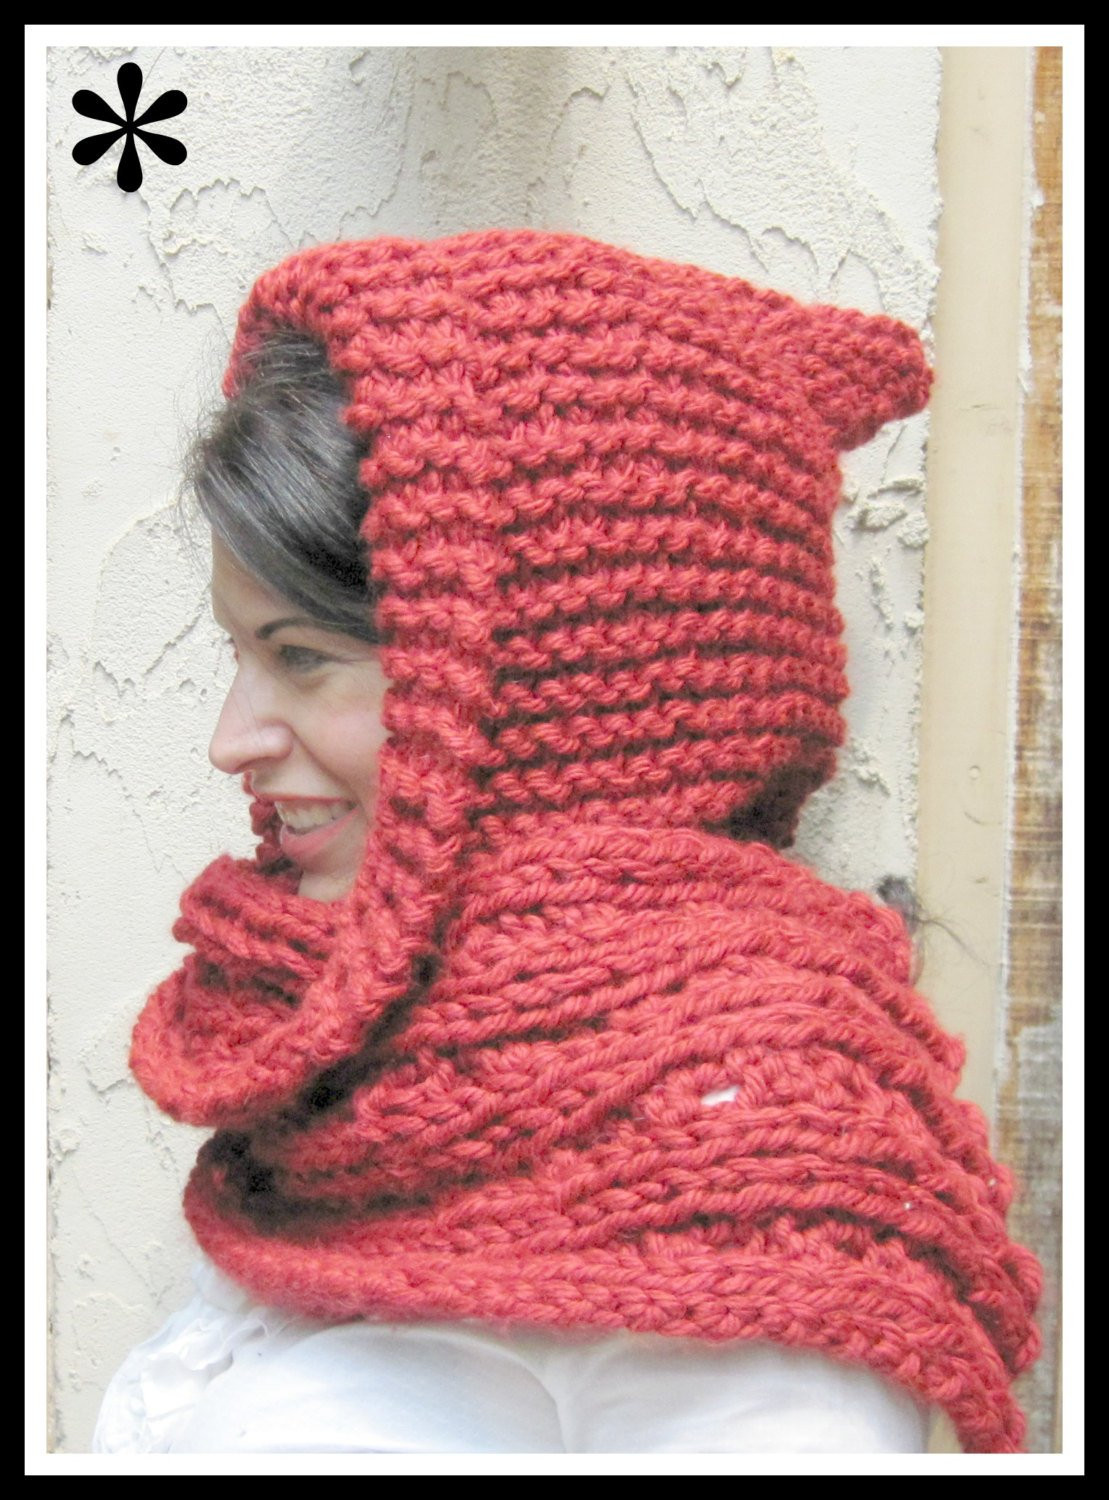 Red Hooded Scarf in Bulky Yarn Knitting Pattern Adult Size